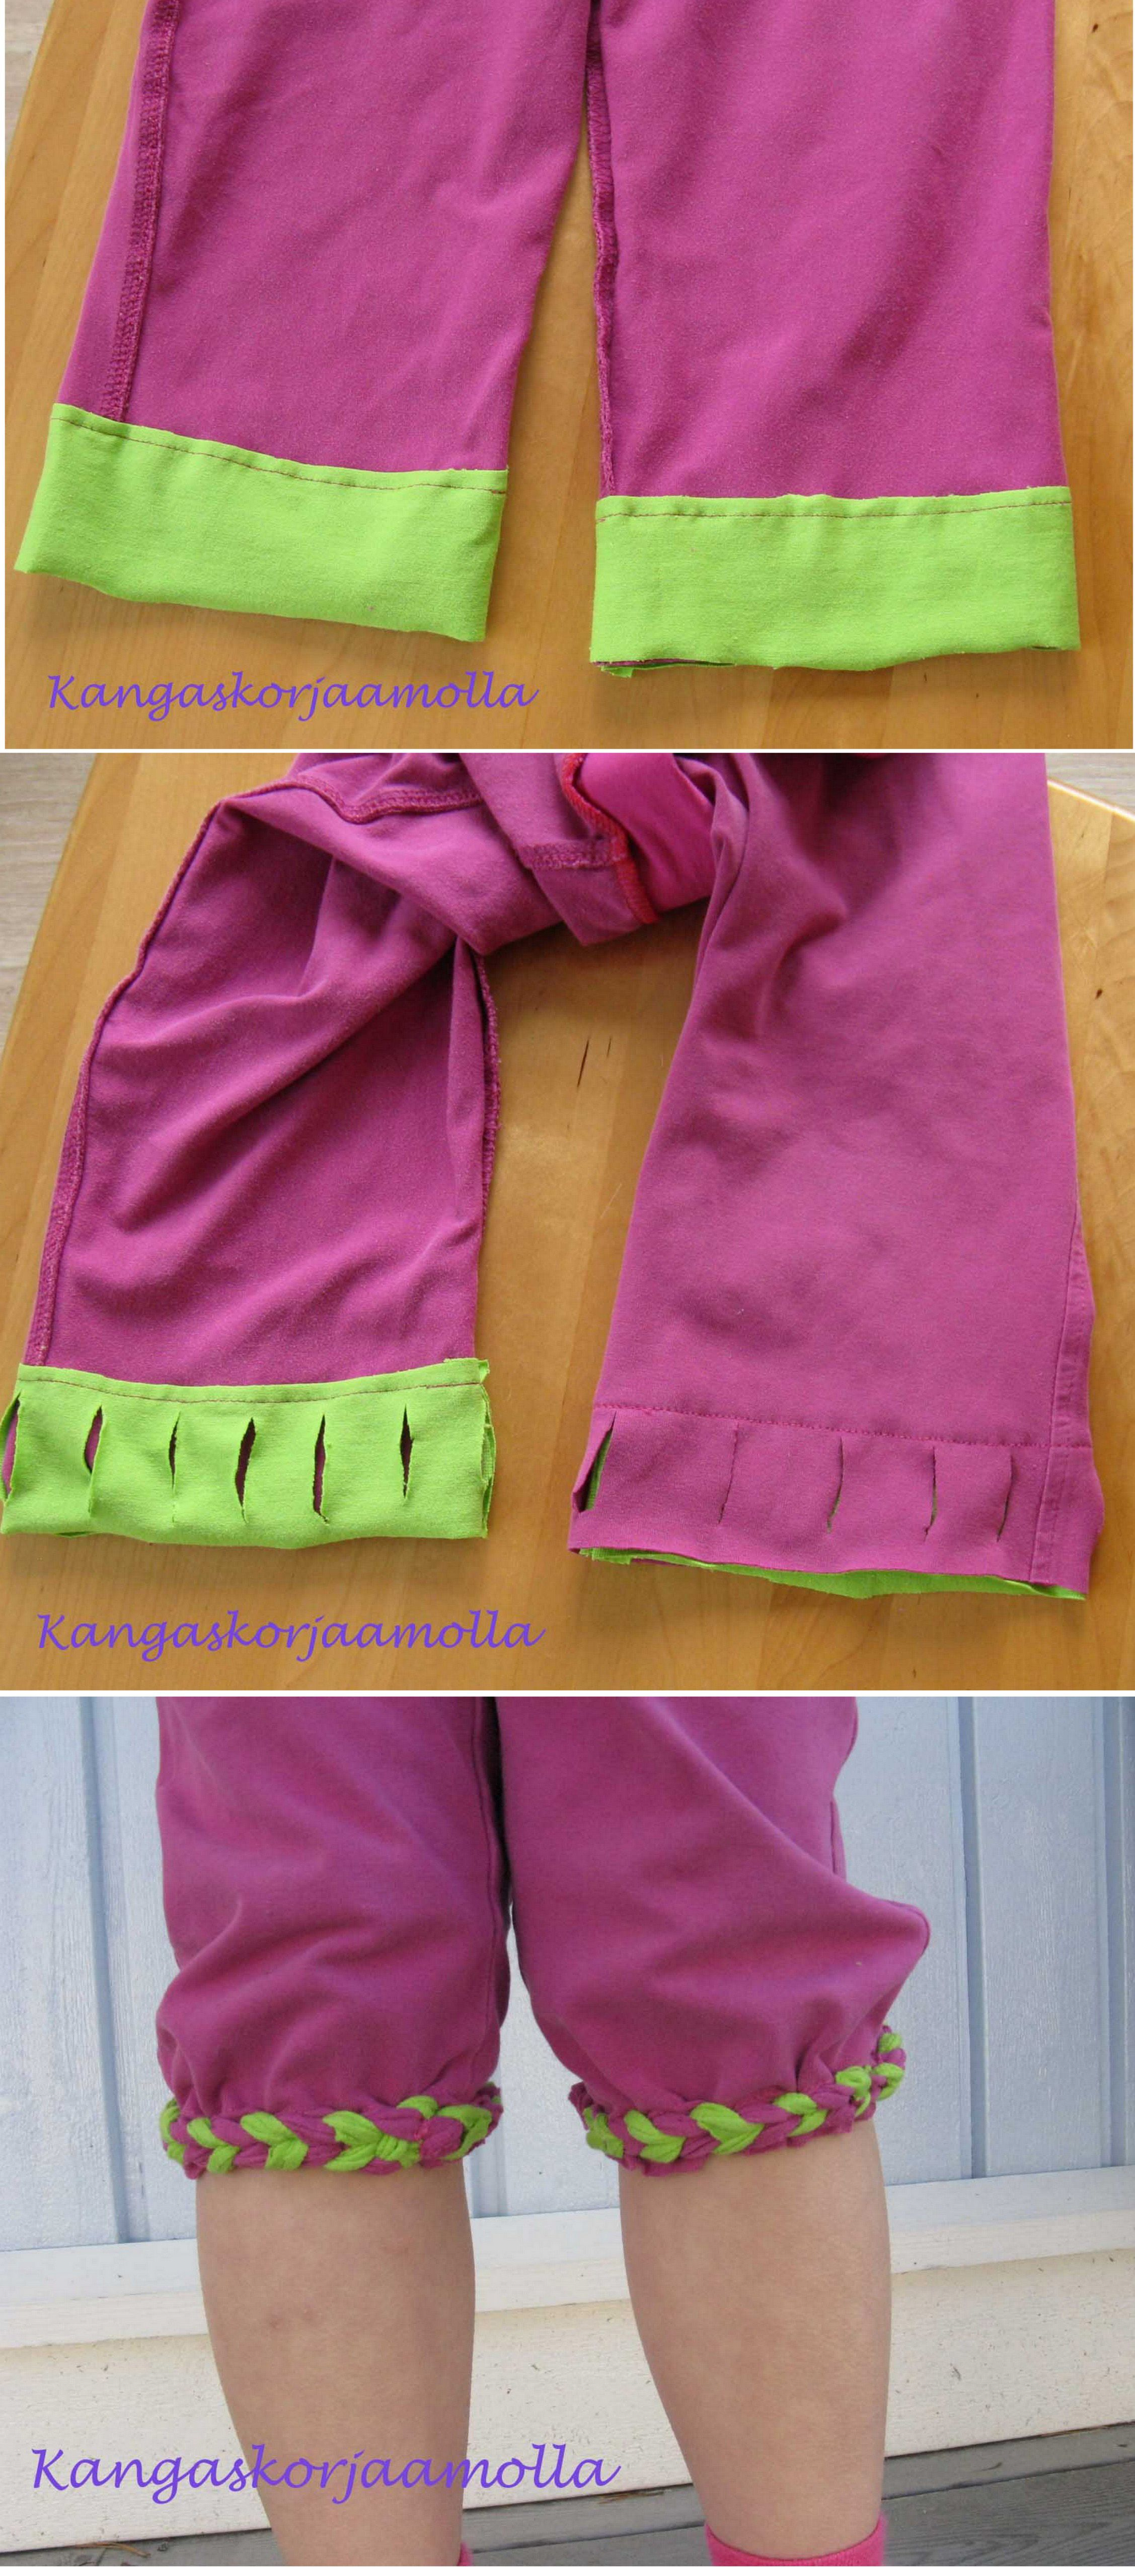 Silmukointi, chain weawing, laddering, braided pants